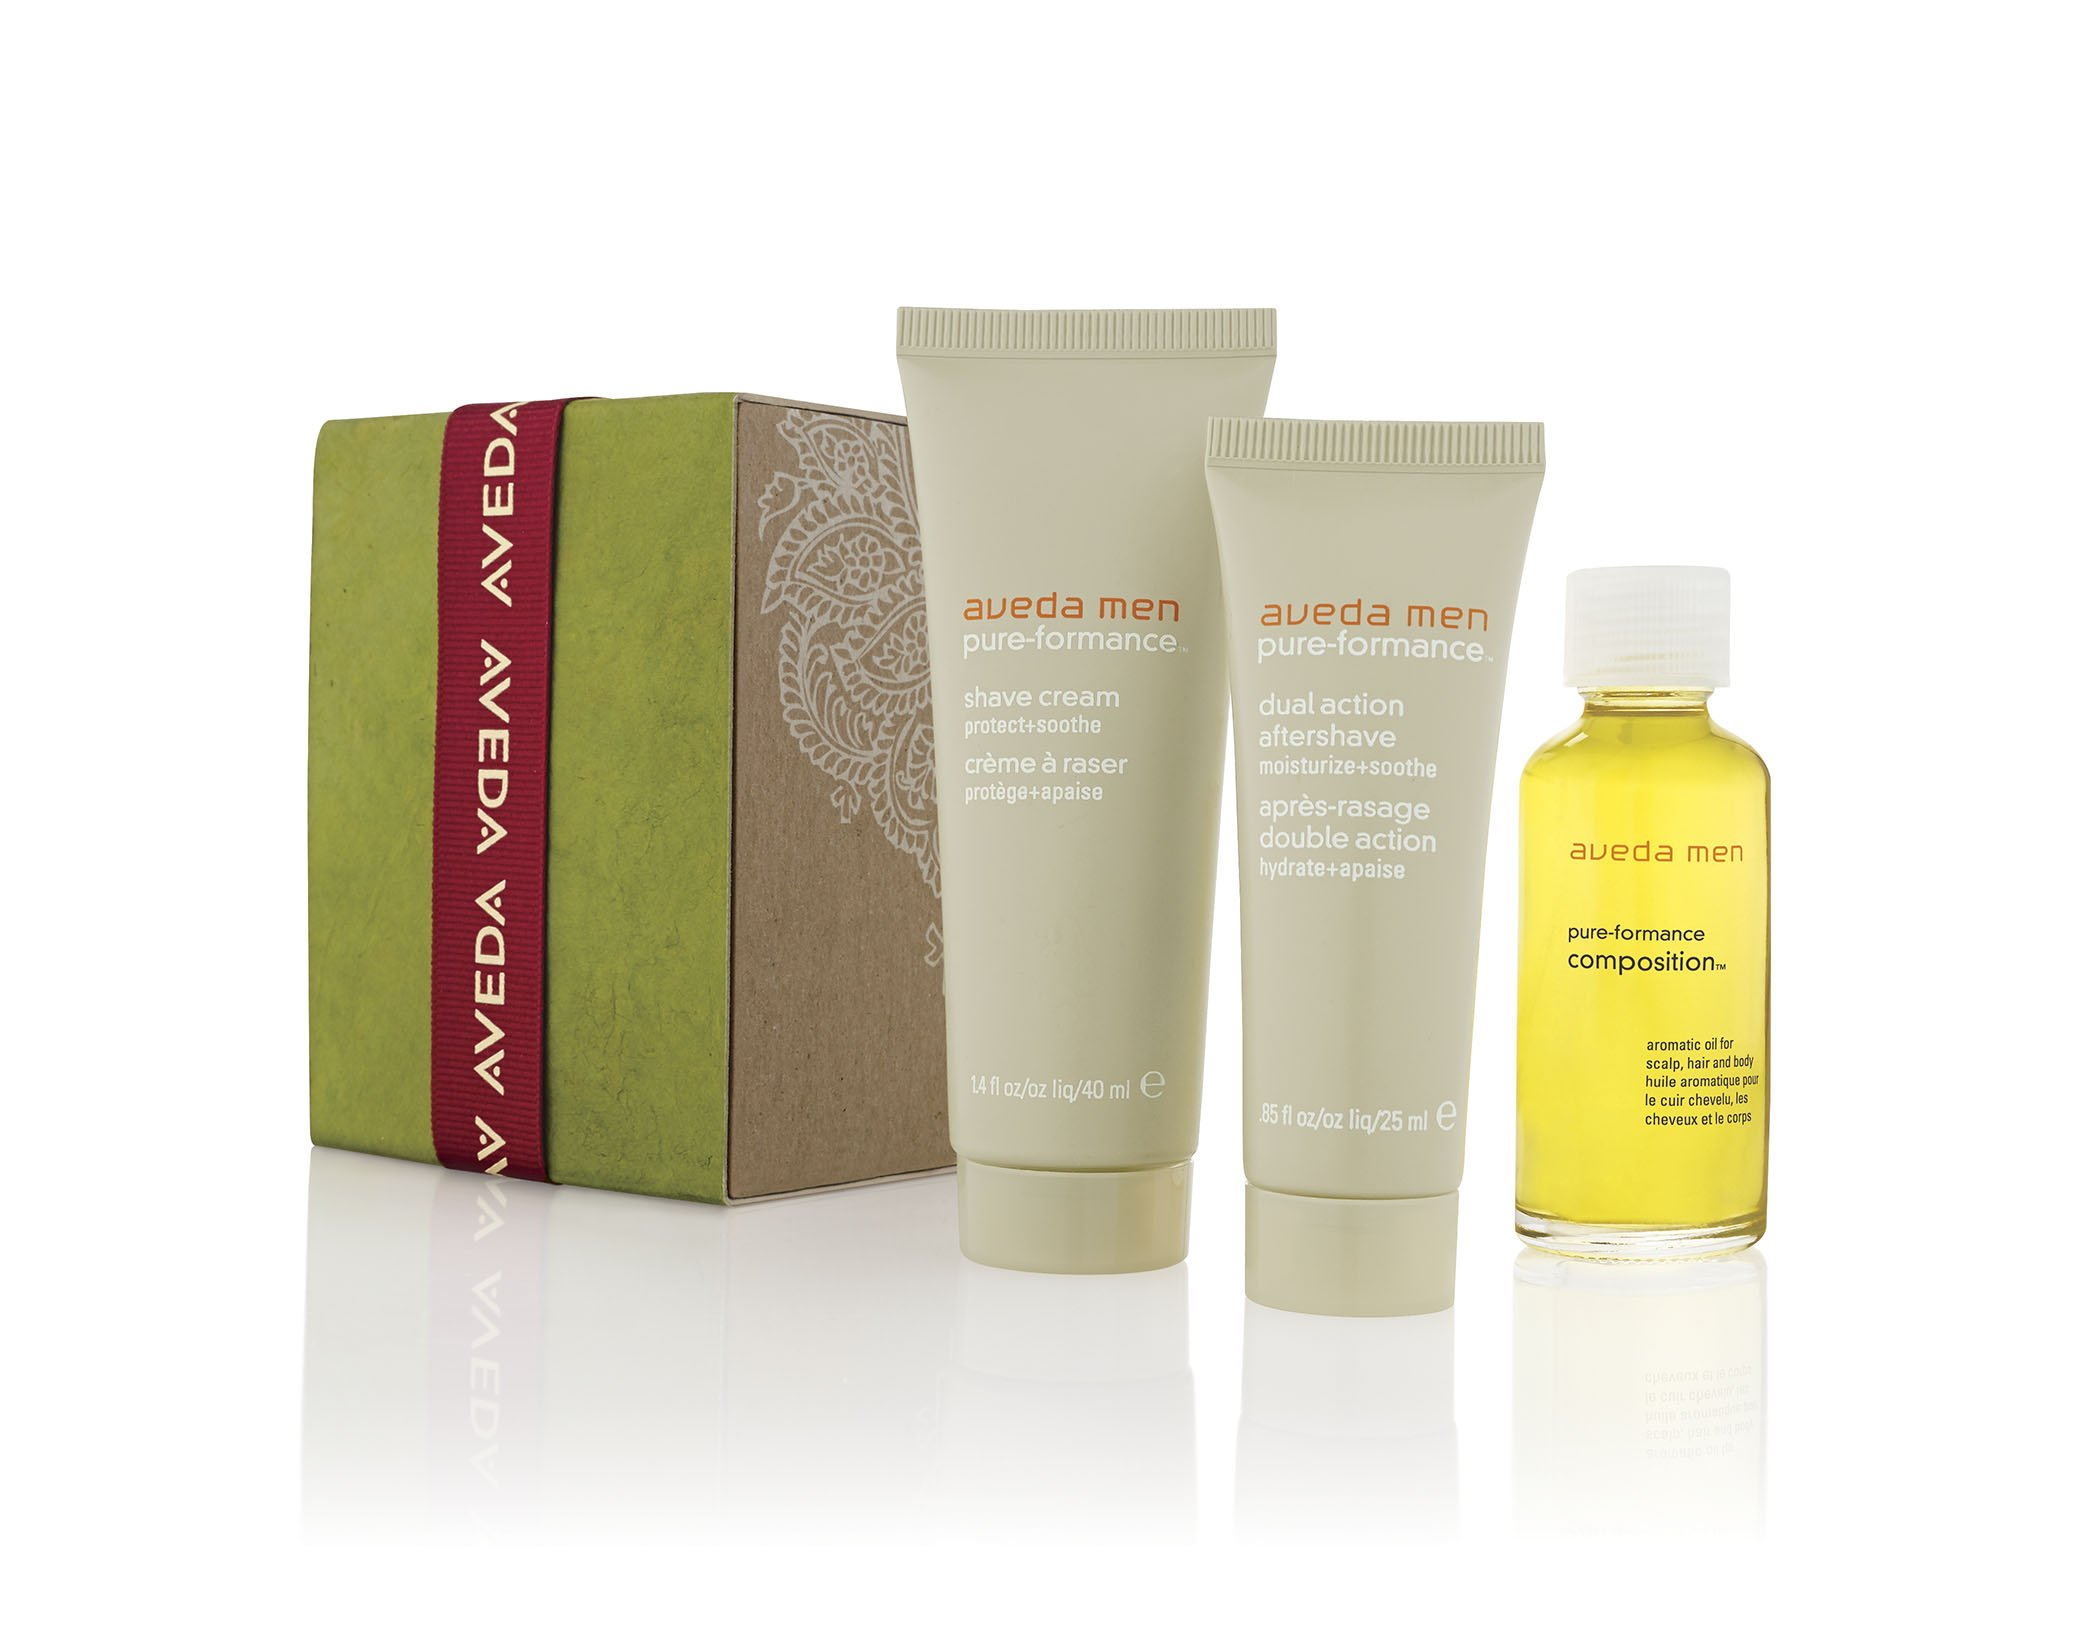 AVEDA Give Great Shaves MEN gift set cream composition aftershave travel